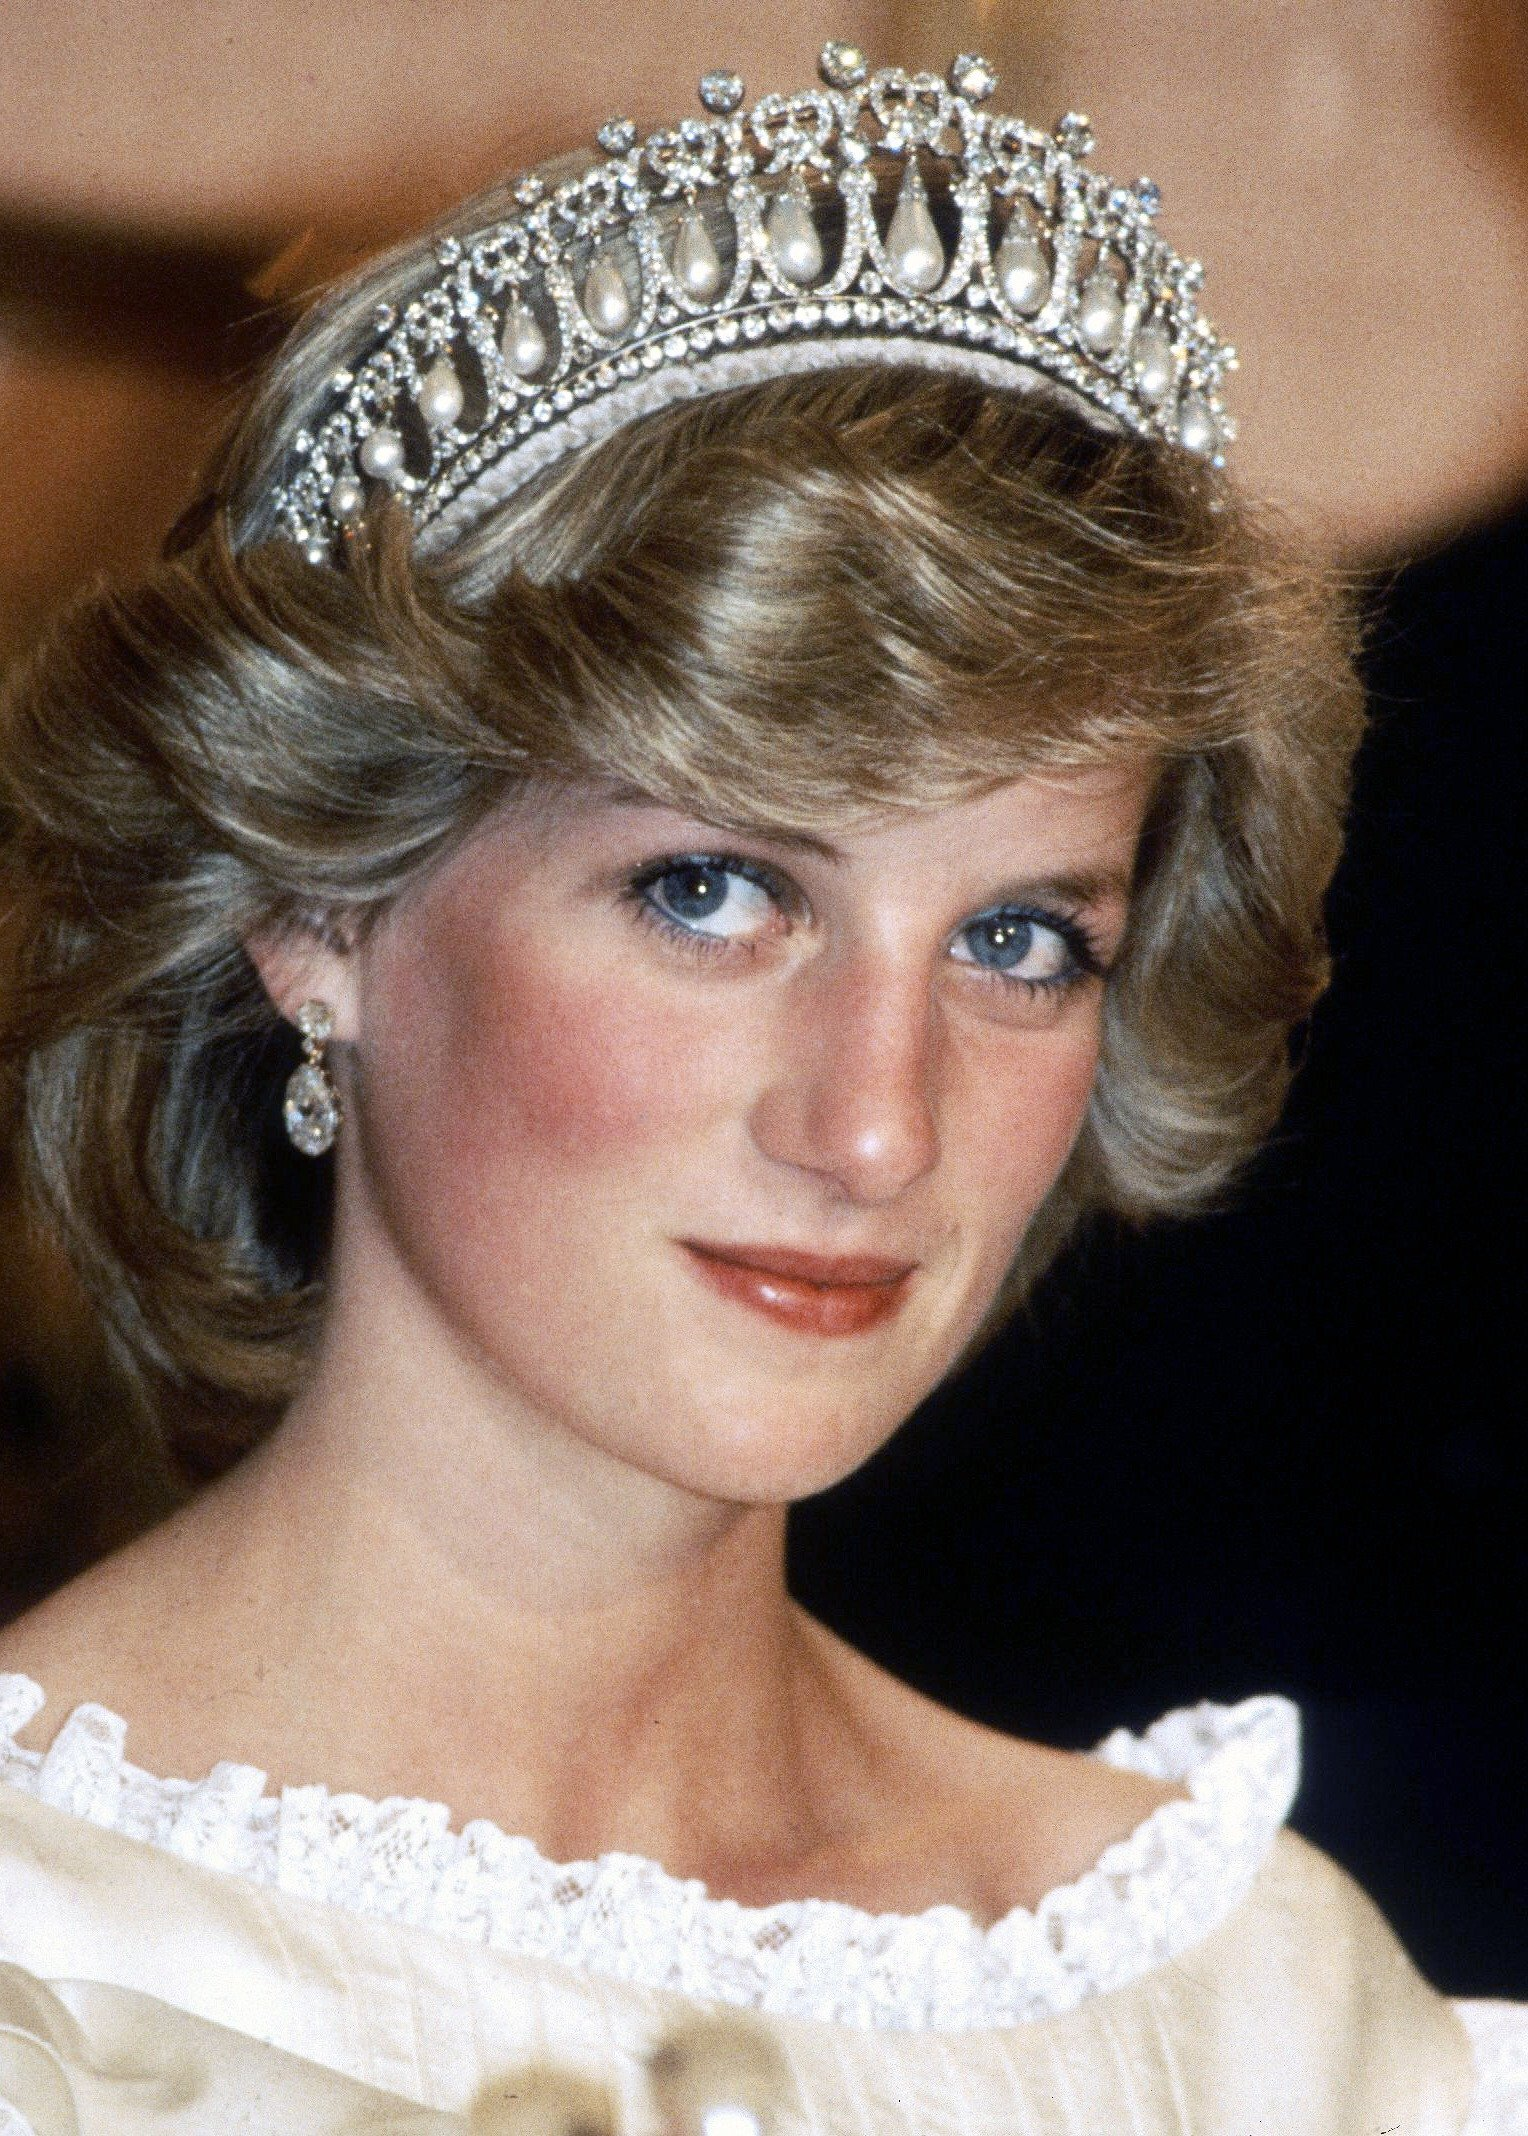 Diana, Princess of Wales attends a farewell banquet on April 29, 1983, in Aukland, New Zealand. | Source: Getty Images.